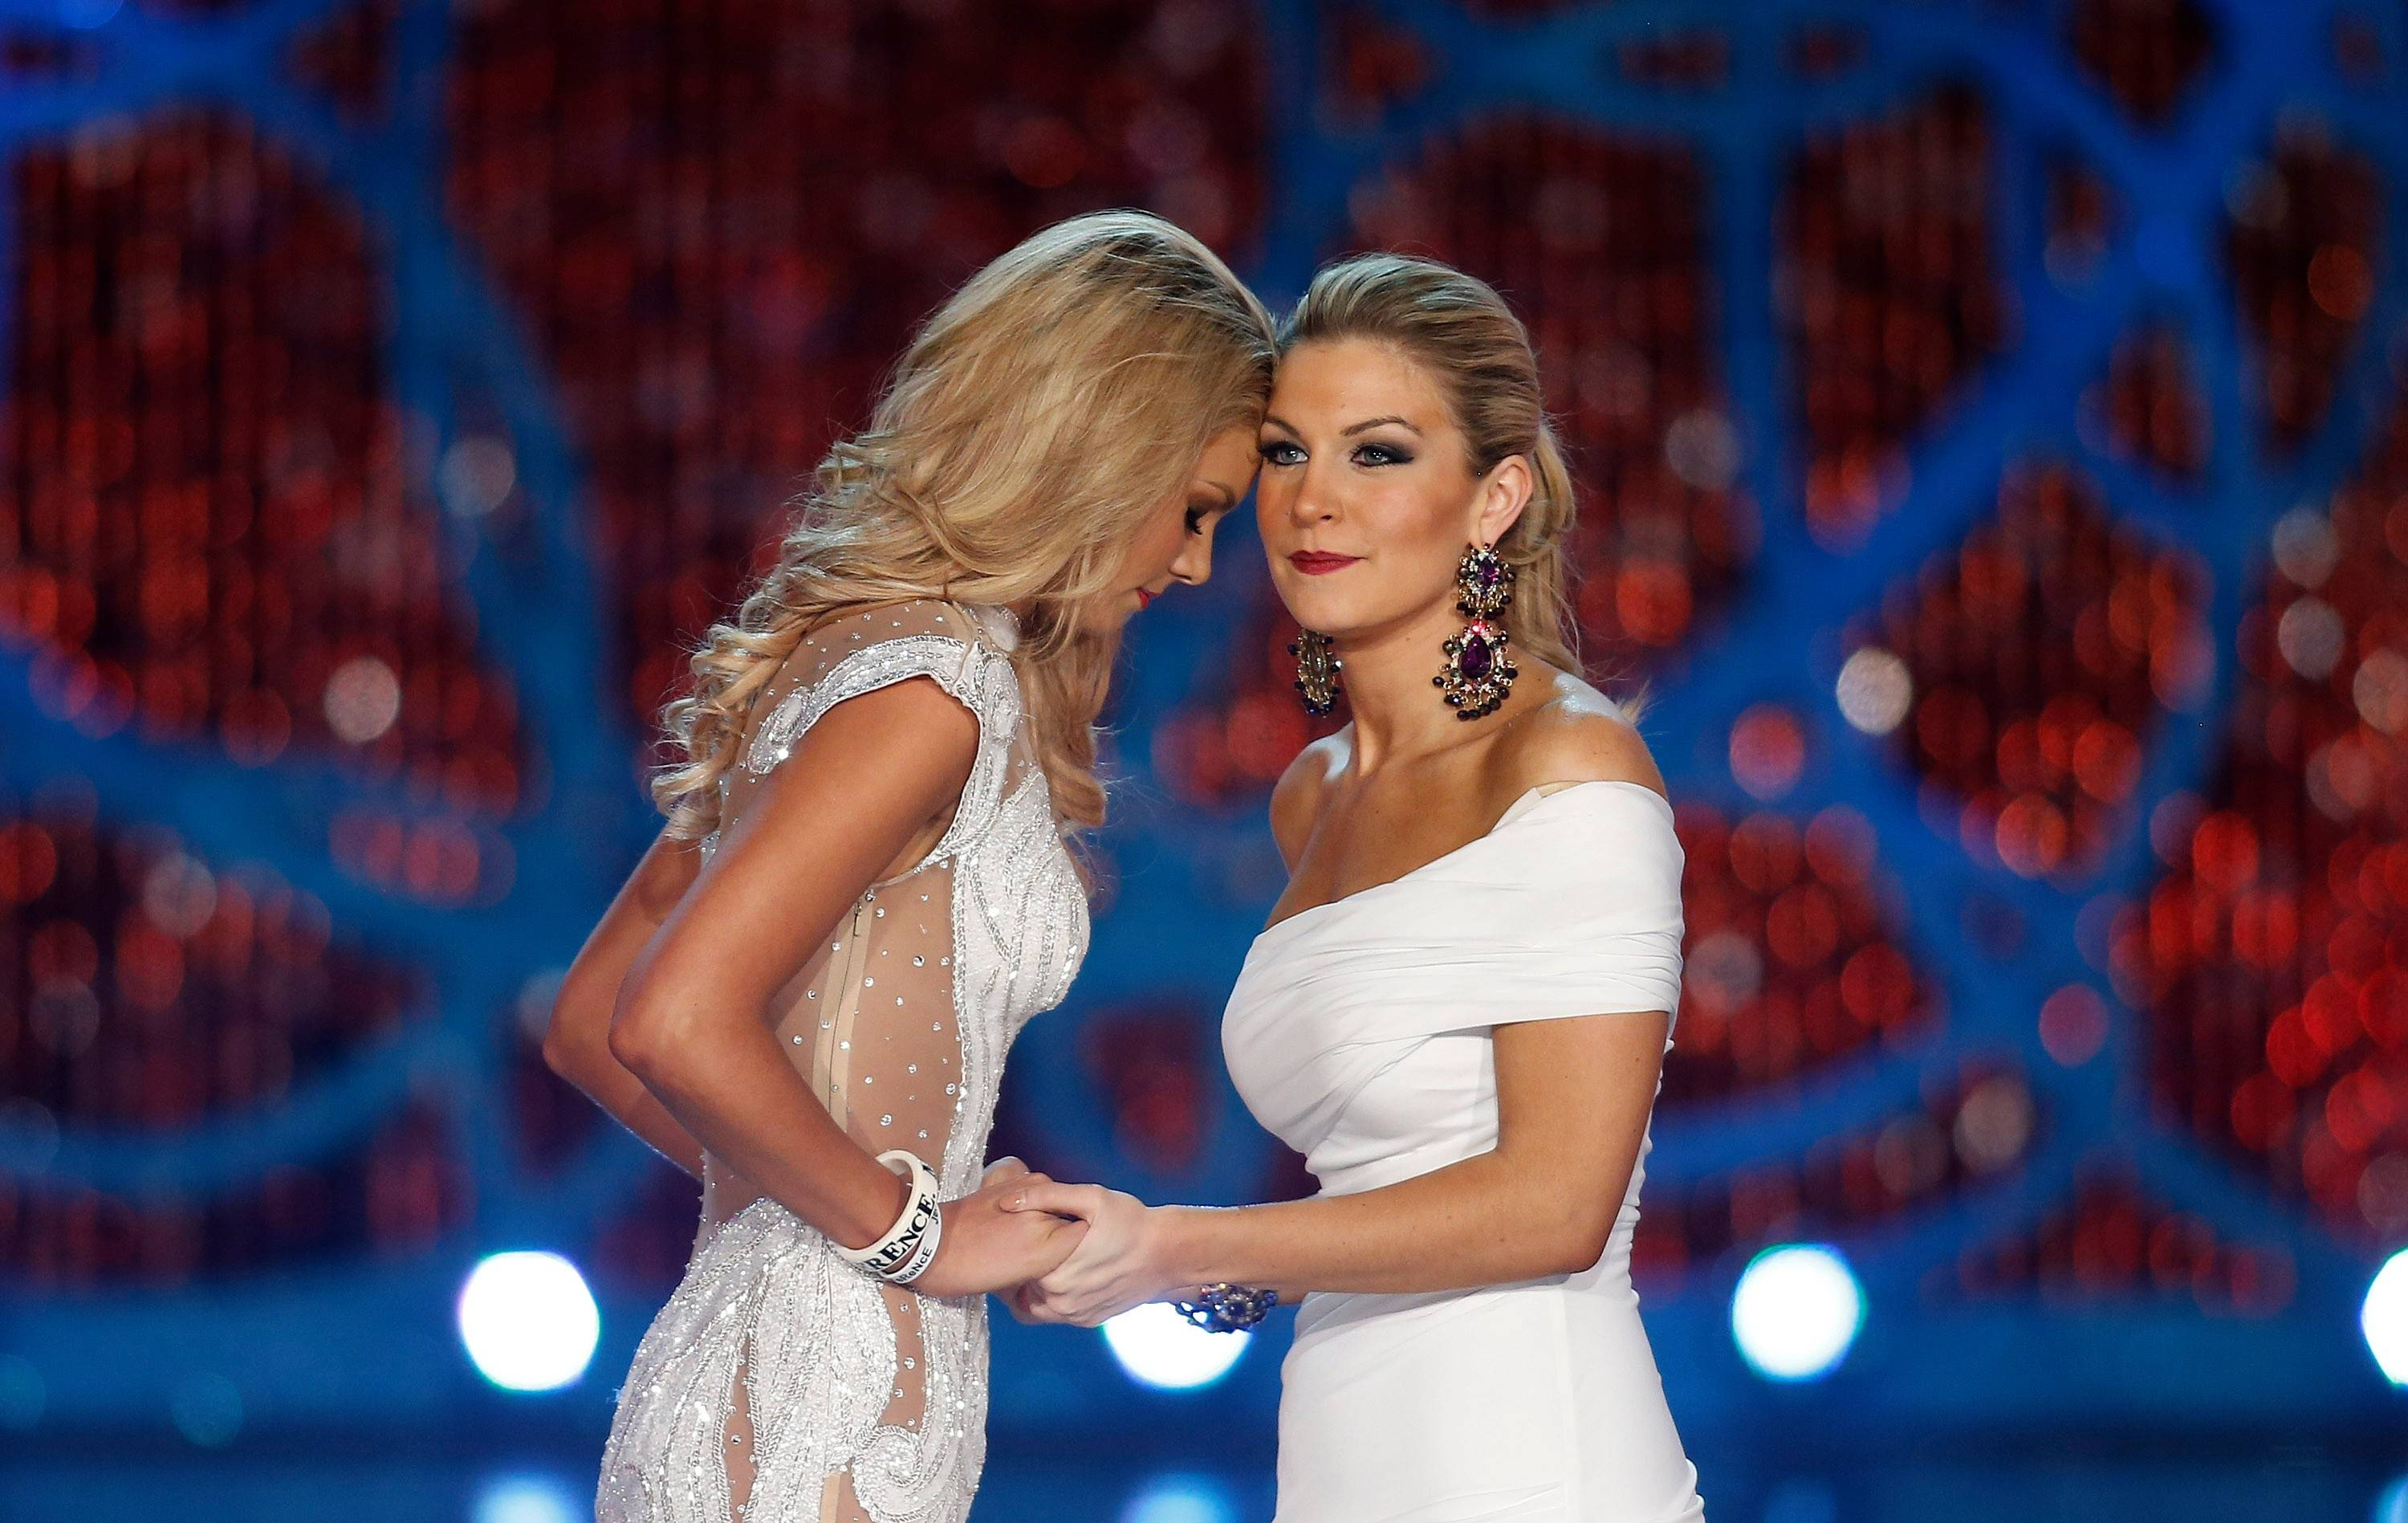 Miss South Carolina Ali Rogers, left, and Miss New York, Mallory Hytes Hagan, right, wait for the announcement of the winner during the Miss America 2013 pageant on Saturday, Jan. 12, 2013, in Las Vegas. Hytes Hagan won the competition.